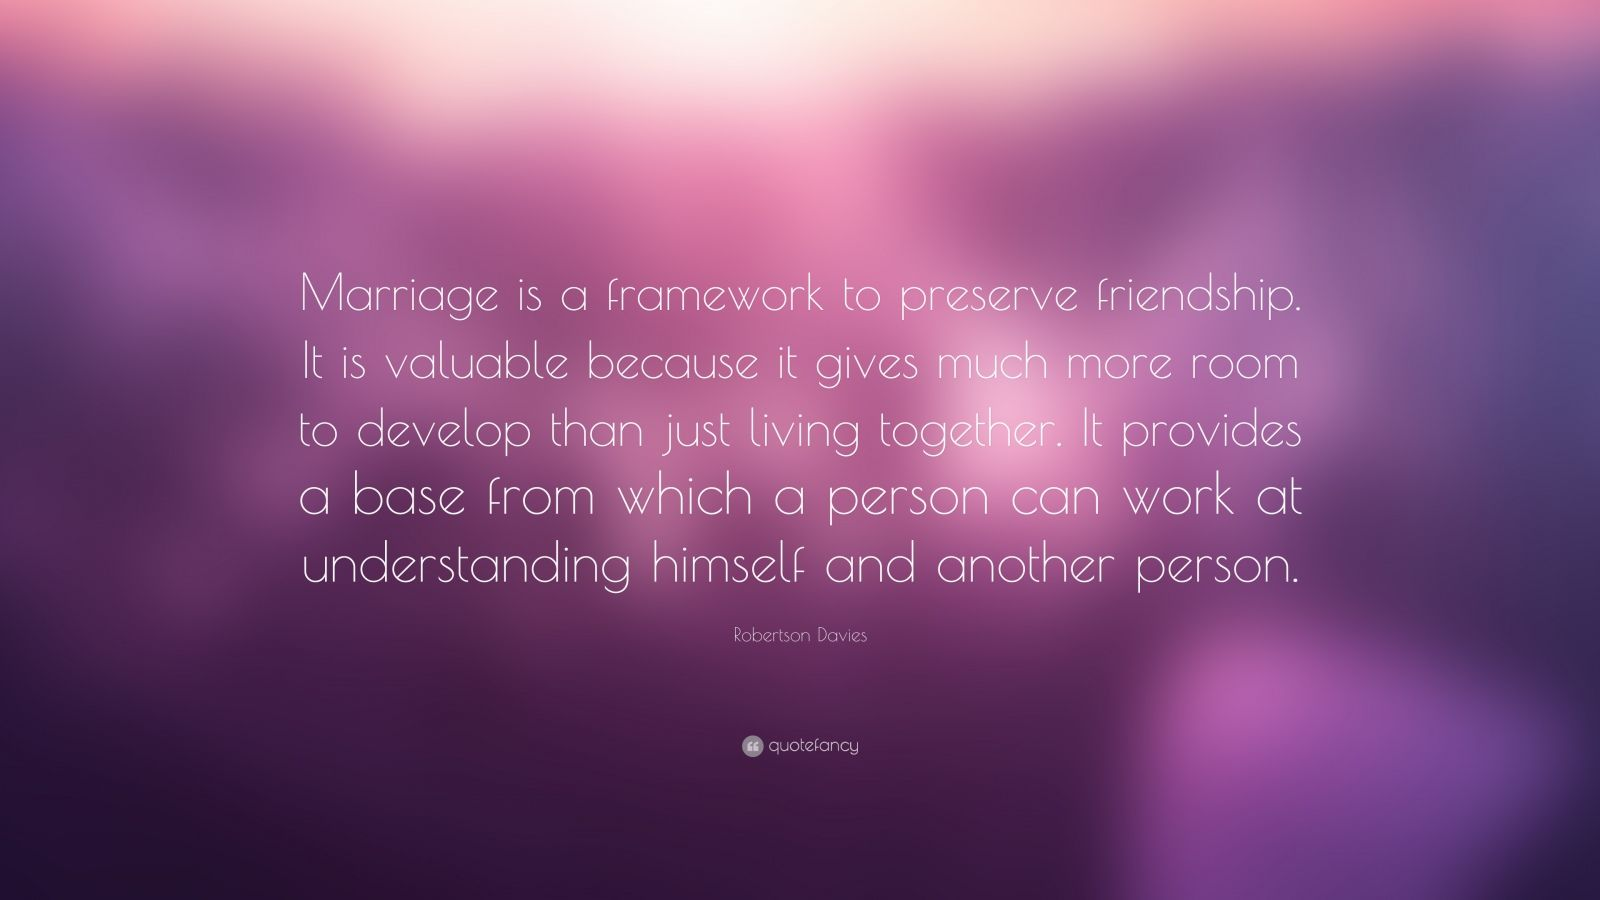 """Robertson Davies Quote: """"Marriage is a framework to preserve friendship. It is valuable because it gives much more room to develop than just living together. It provides a base from which a person can work at understanding himself and another person."""""""